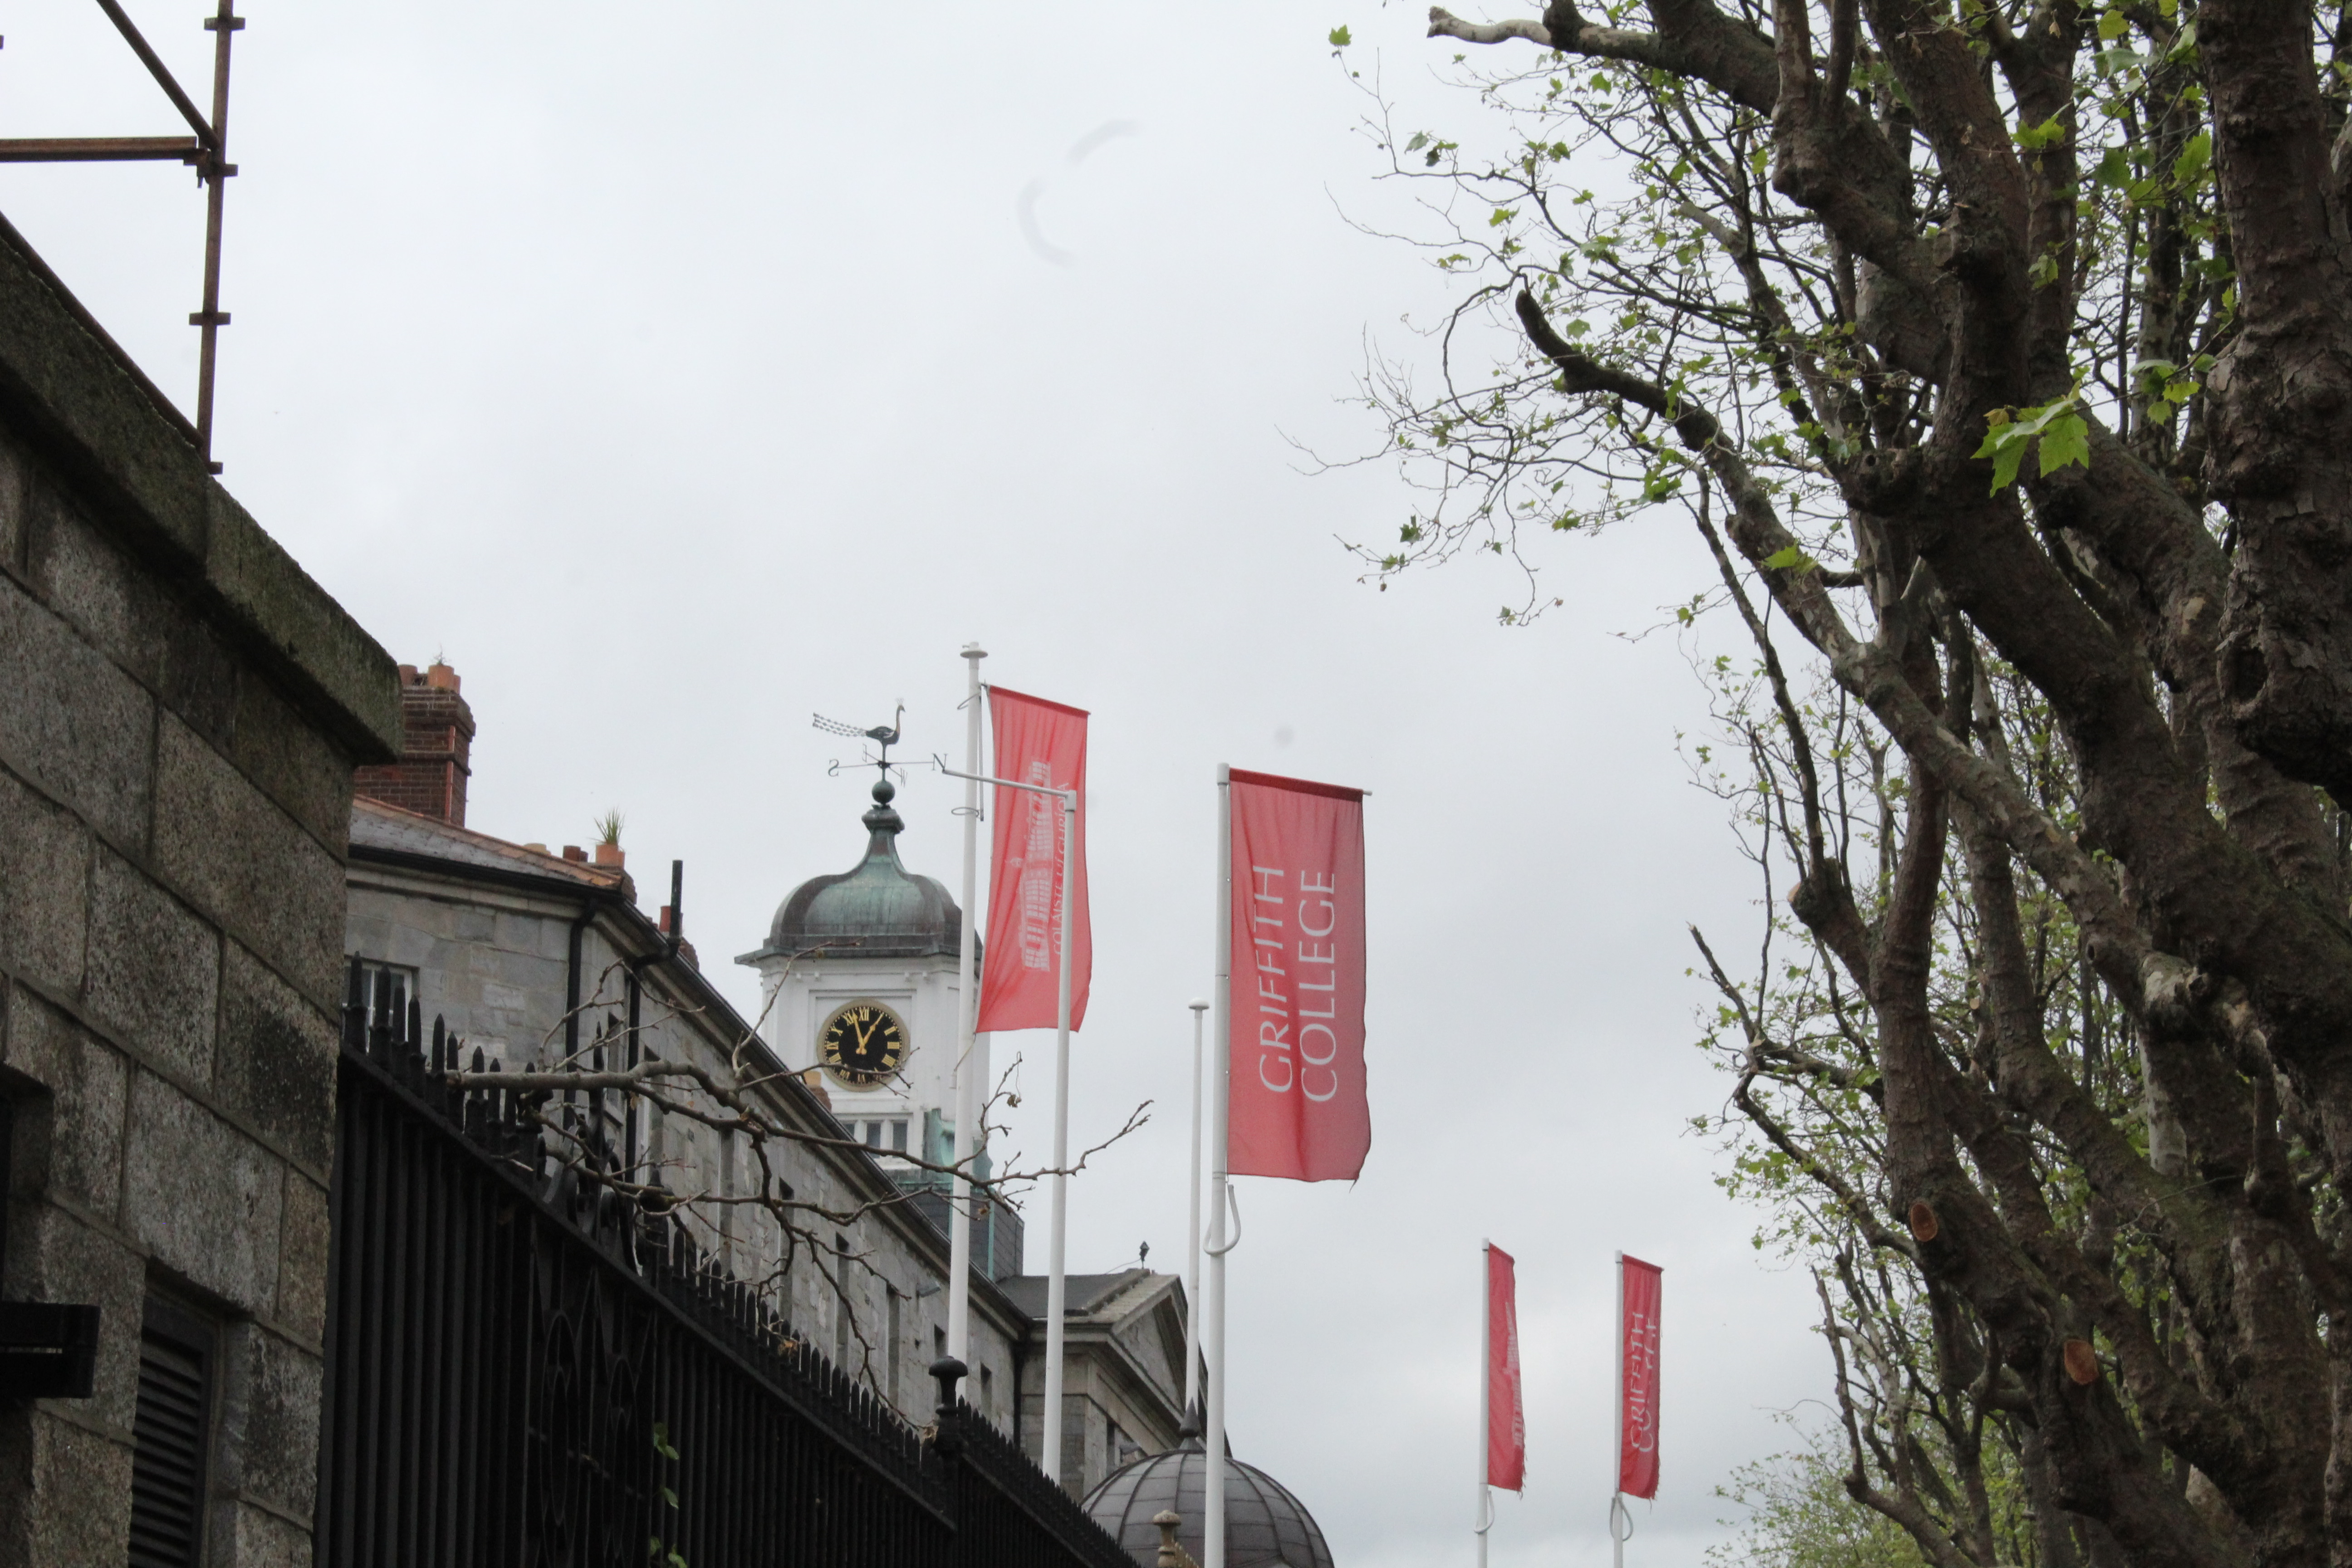 Griffith College flags